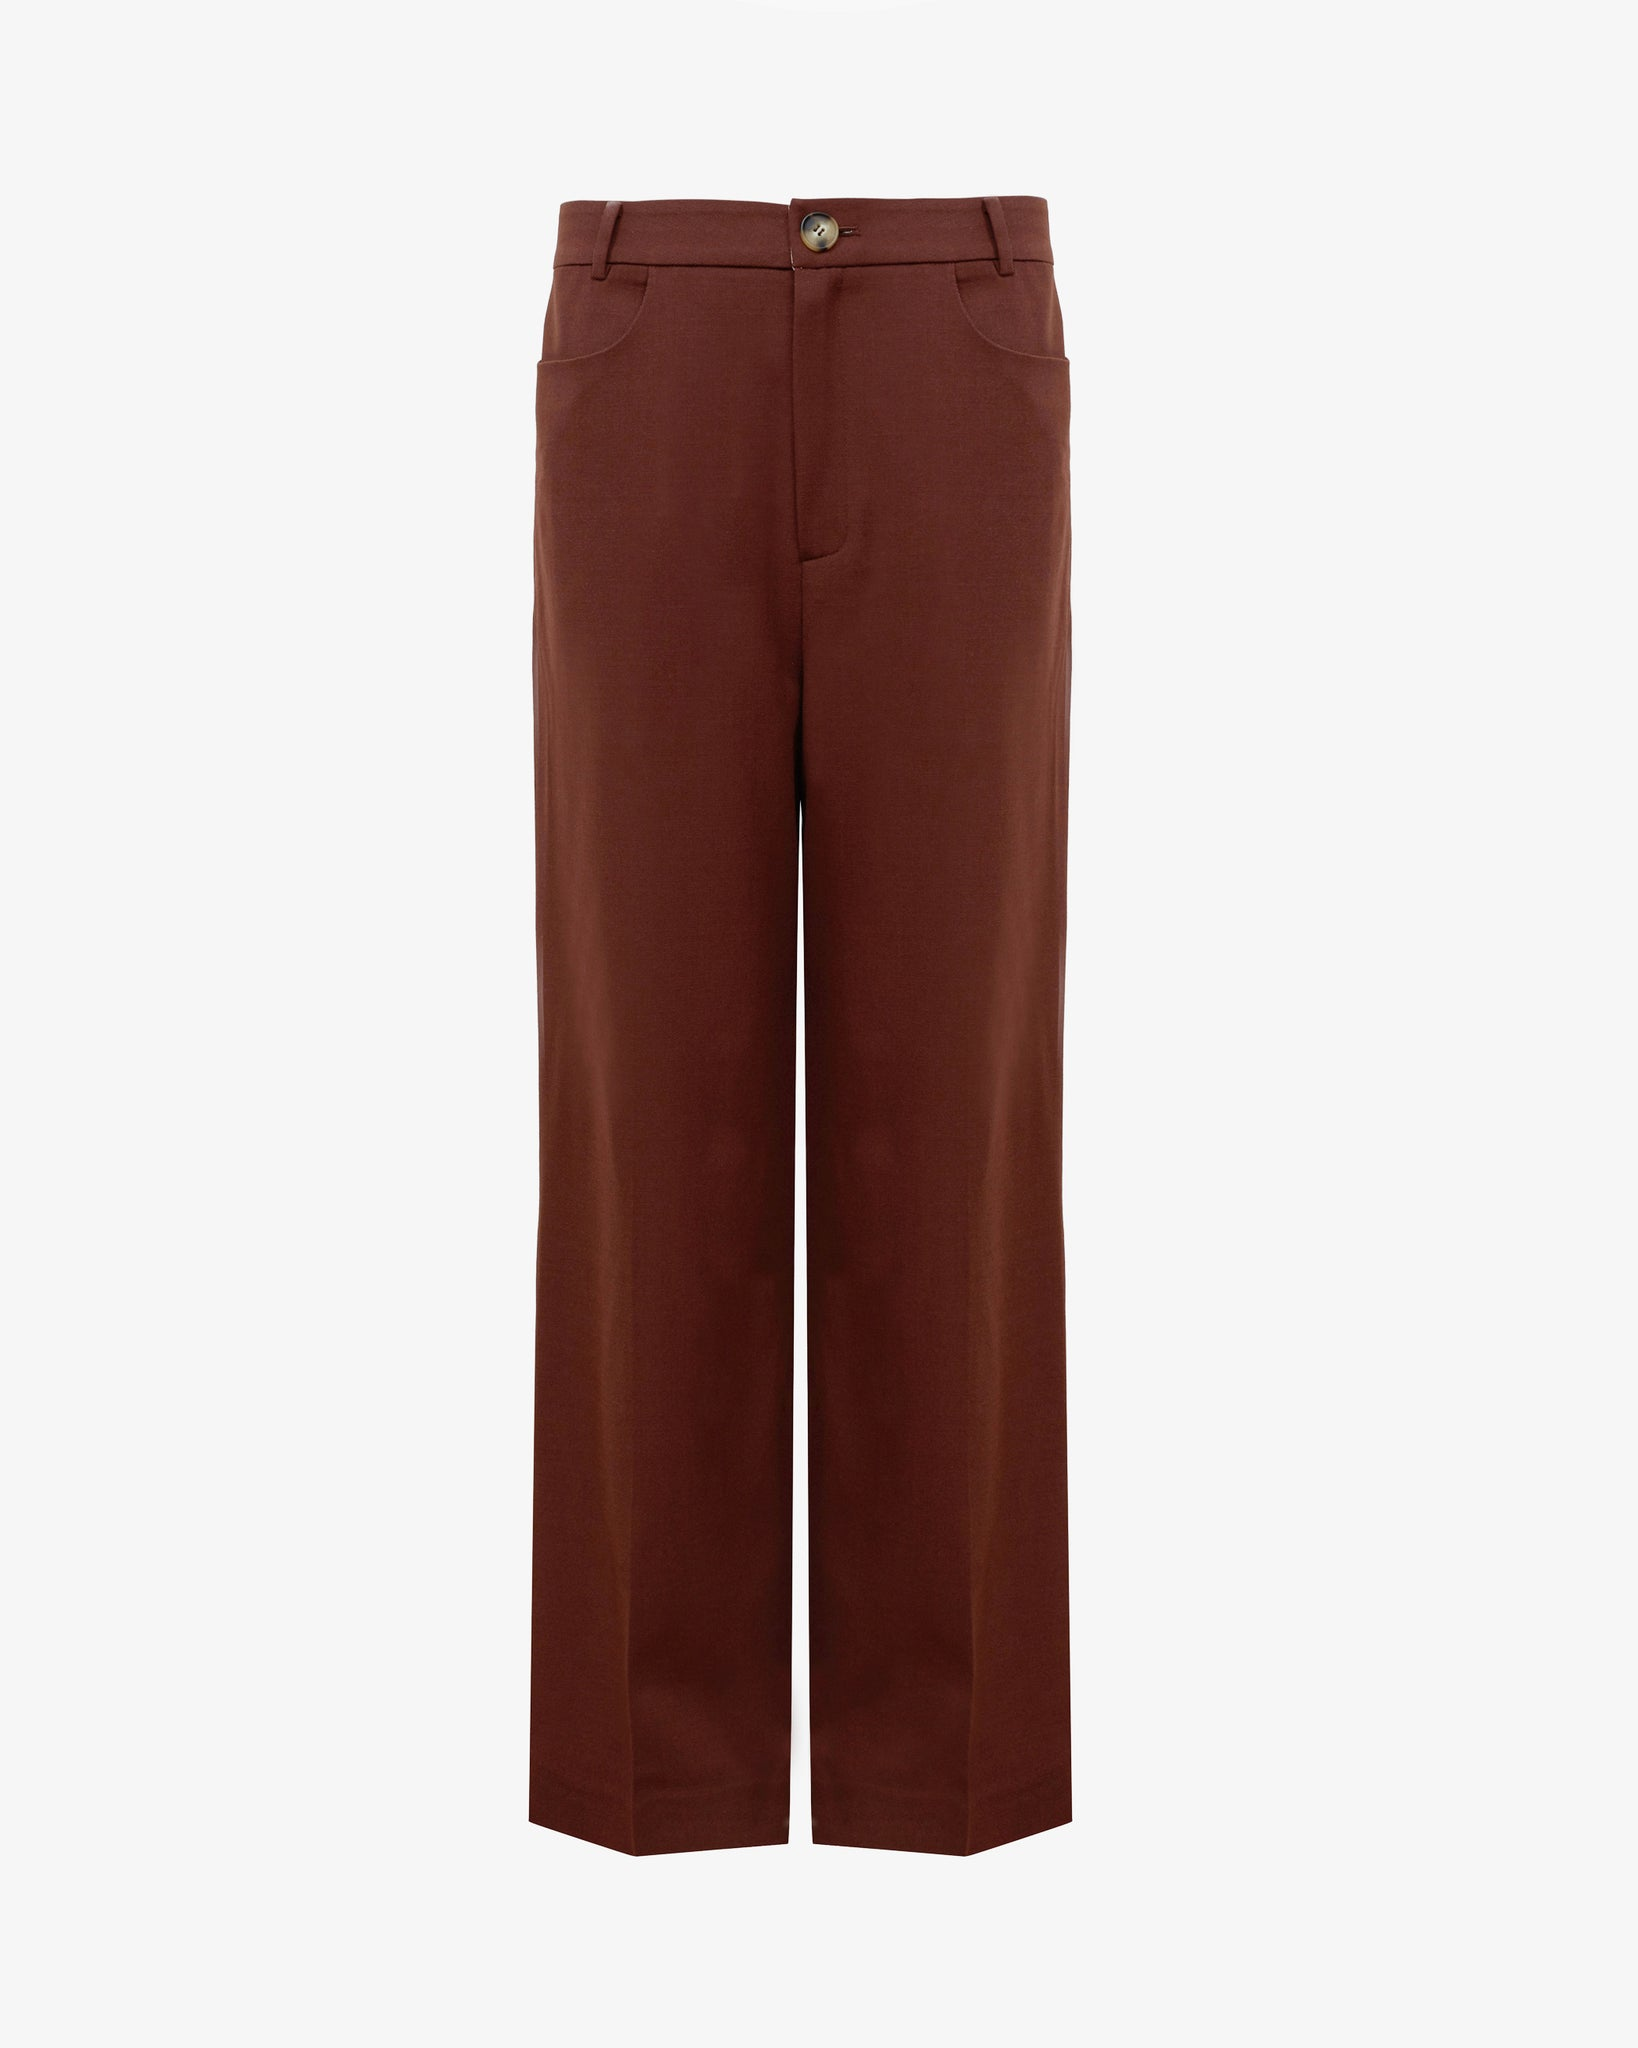 Elliot Trousers Wool Blend Brown - UNISEX